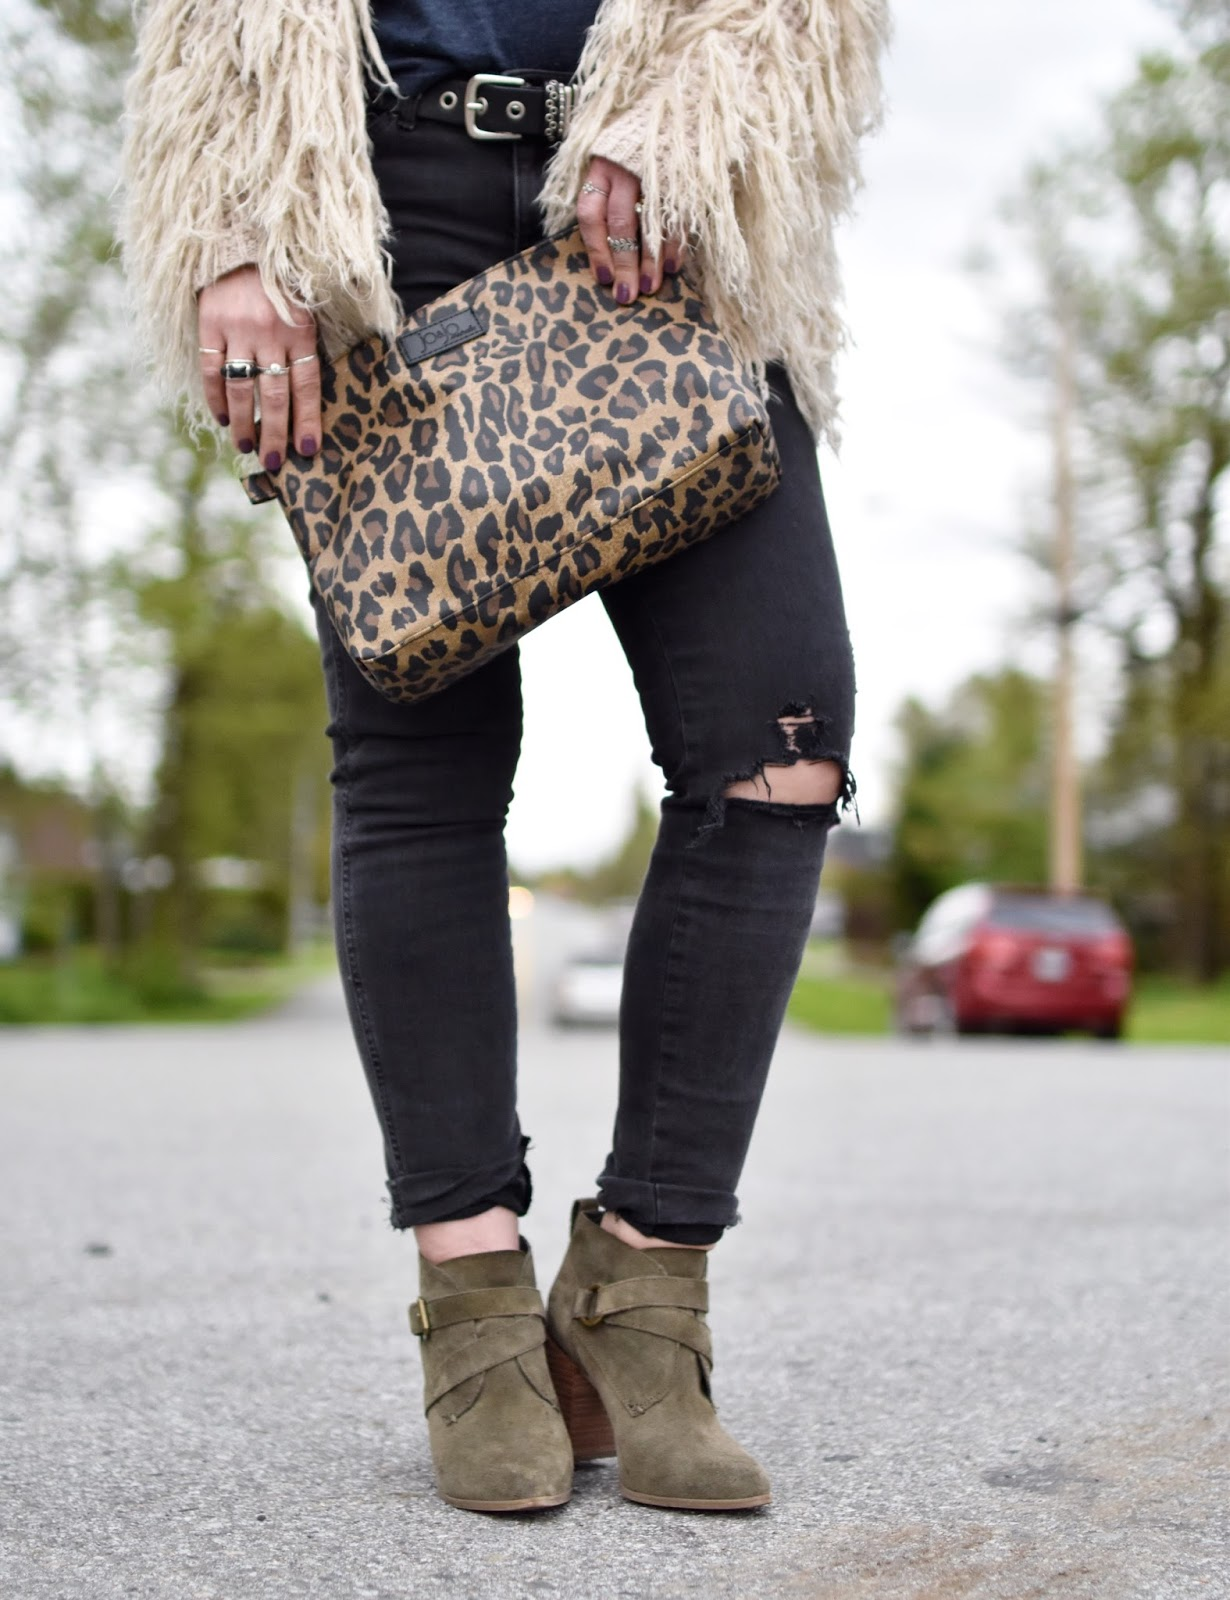 Monika Faulkner outfit inspiration - black skinny jeans, shaggy cardigan, olive suede booties, leopard-patterned pouch